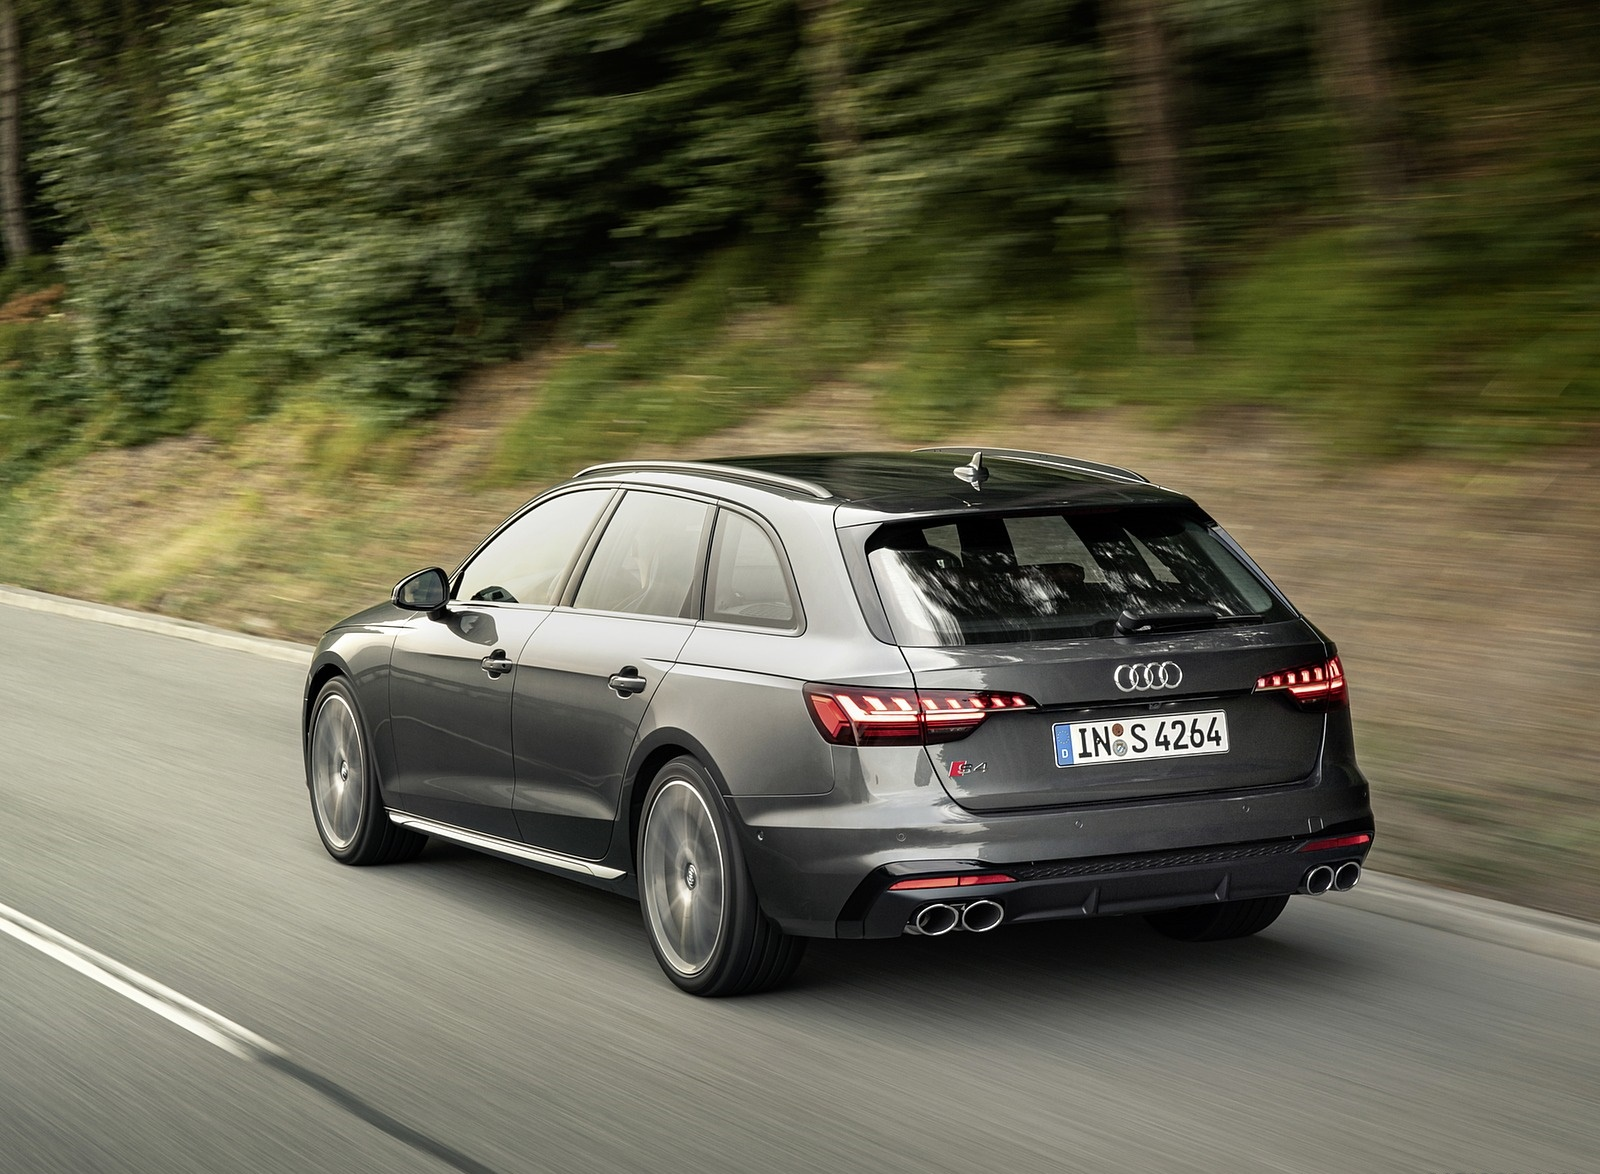 2019 Audi S4 Avant TDI (Color: Daytona Gray) Rear Three-Quarter Wallpapers (4)